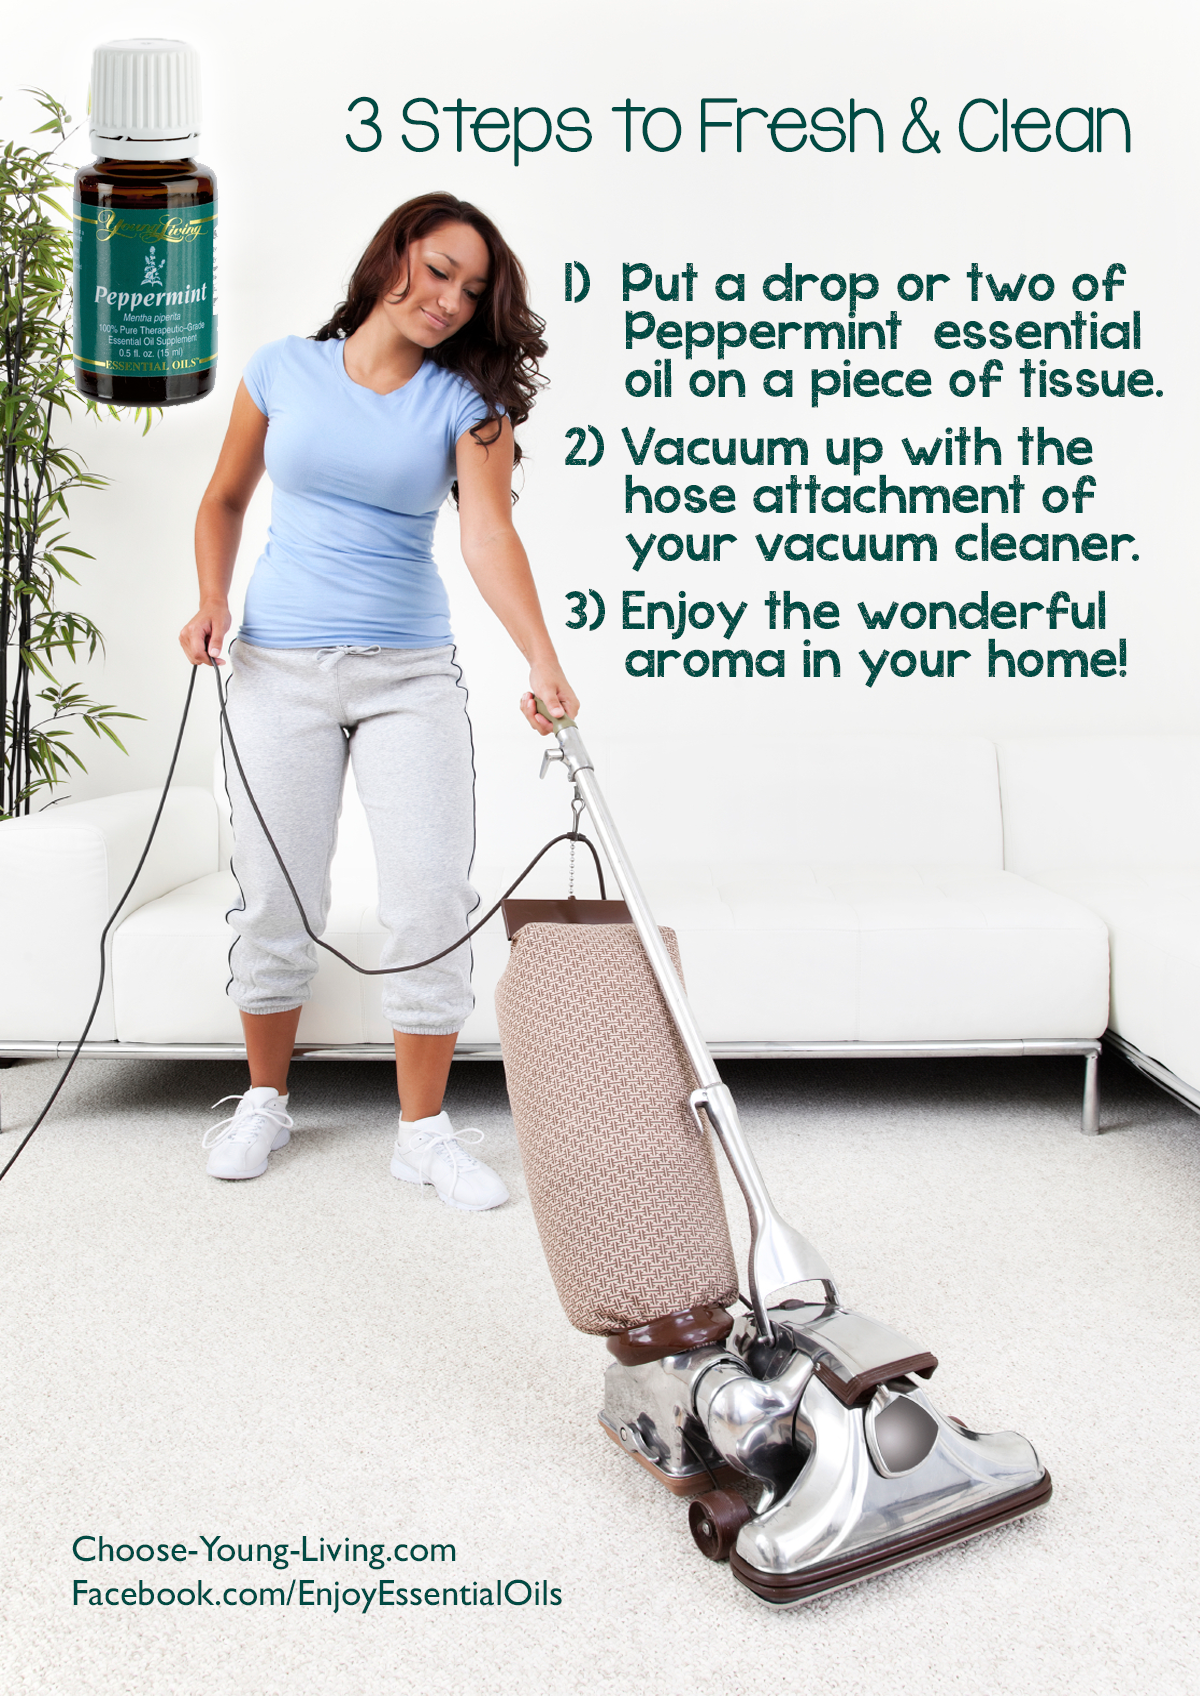 Here's a great way to freshen up your house when vacuuming! Put a few drops of an essential oil, like Peppermint or Purification, on a cotton ball or a piece of tissue. Vacuum up with the hose attachment of your vacuum cleaner. Enjoy the wonderful aroma that spreads through each room as you clean.  http://enjoy-family-essential-oils.com